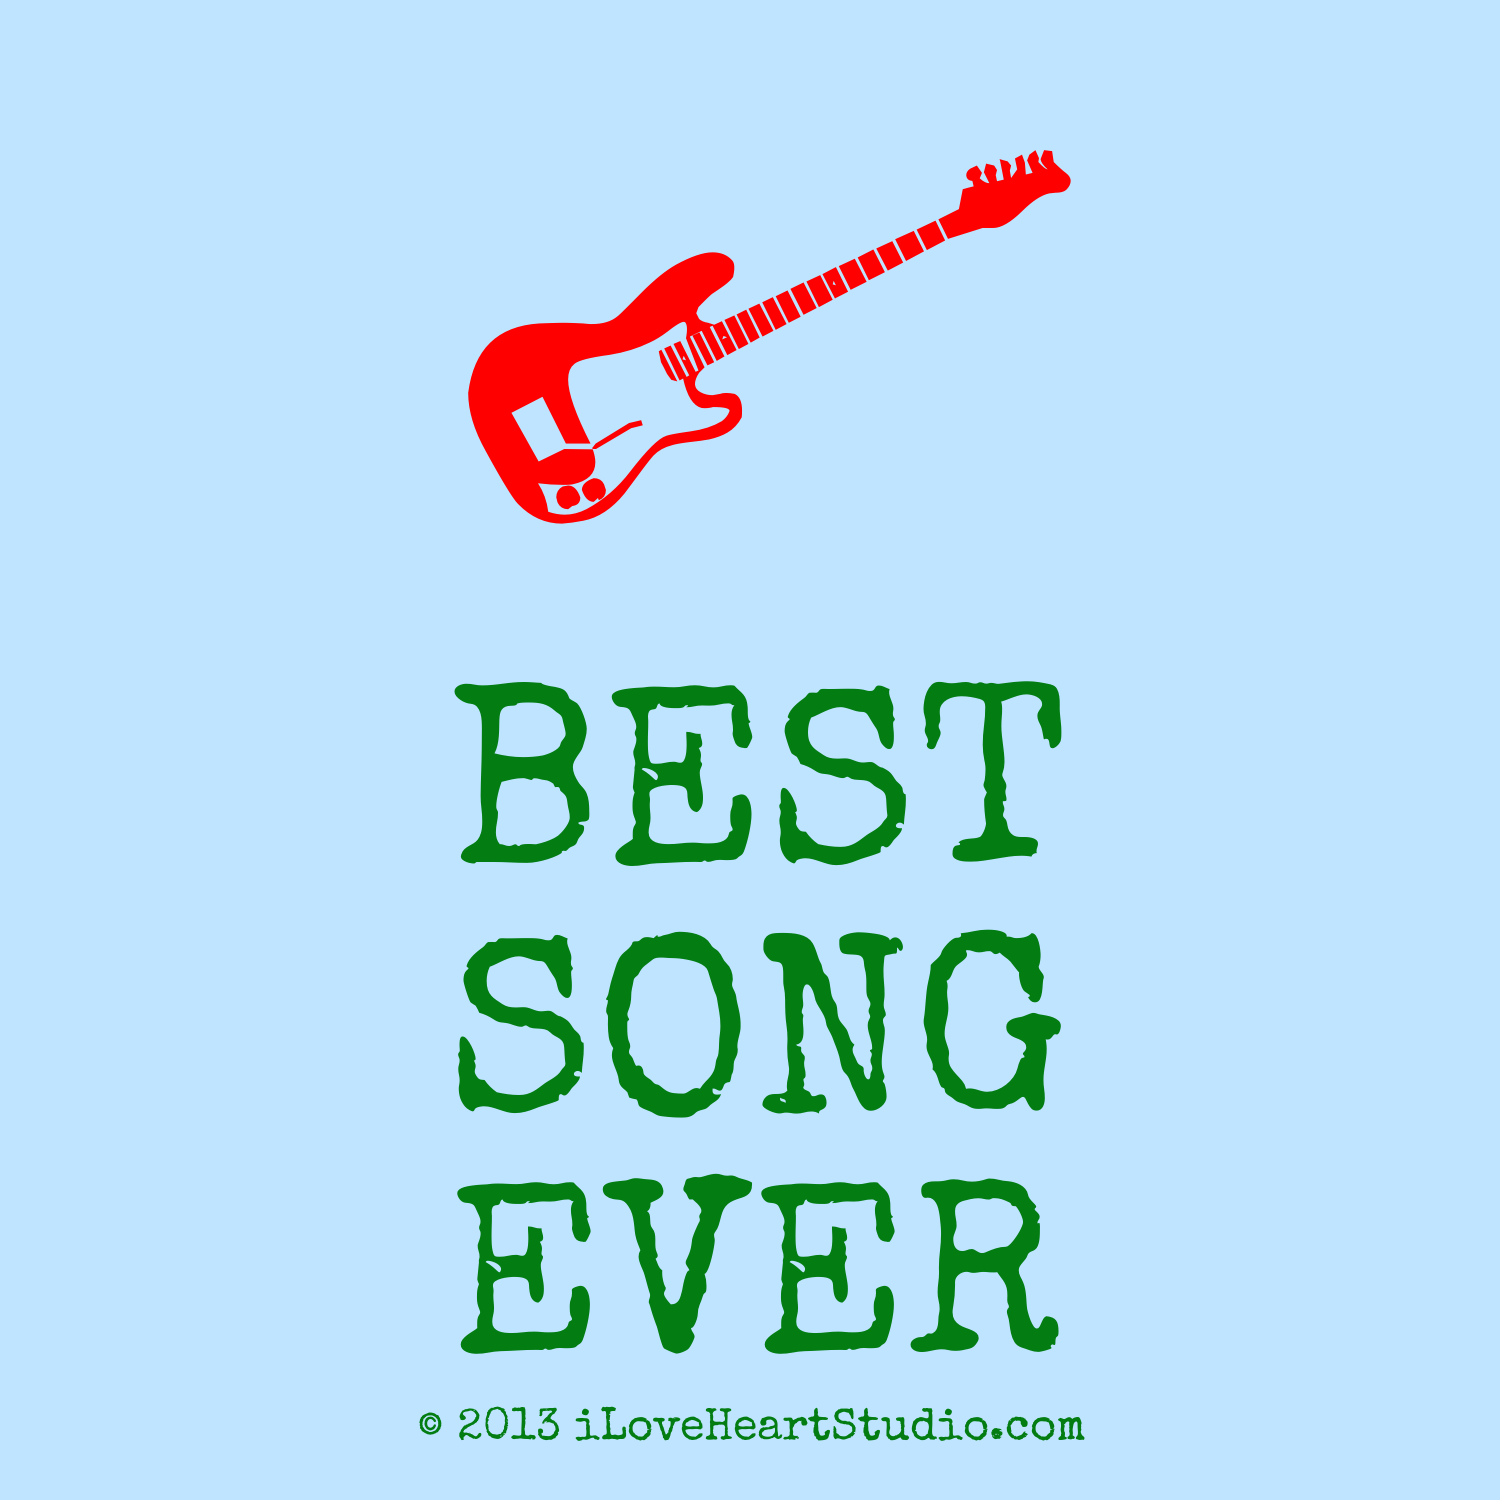 39 electric guitar best song ever 39 design on t shirt for The best house music ever